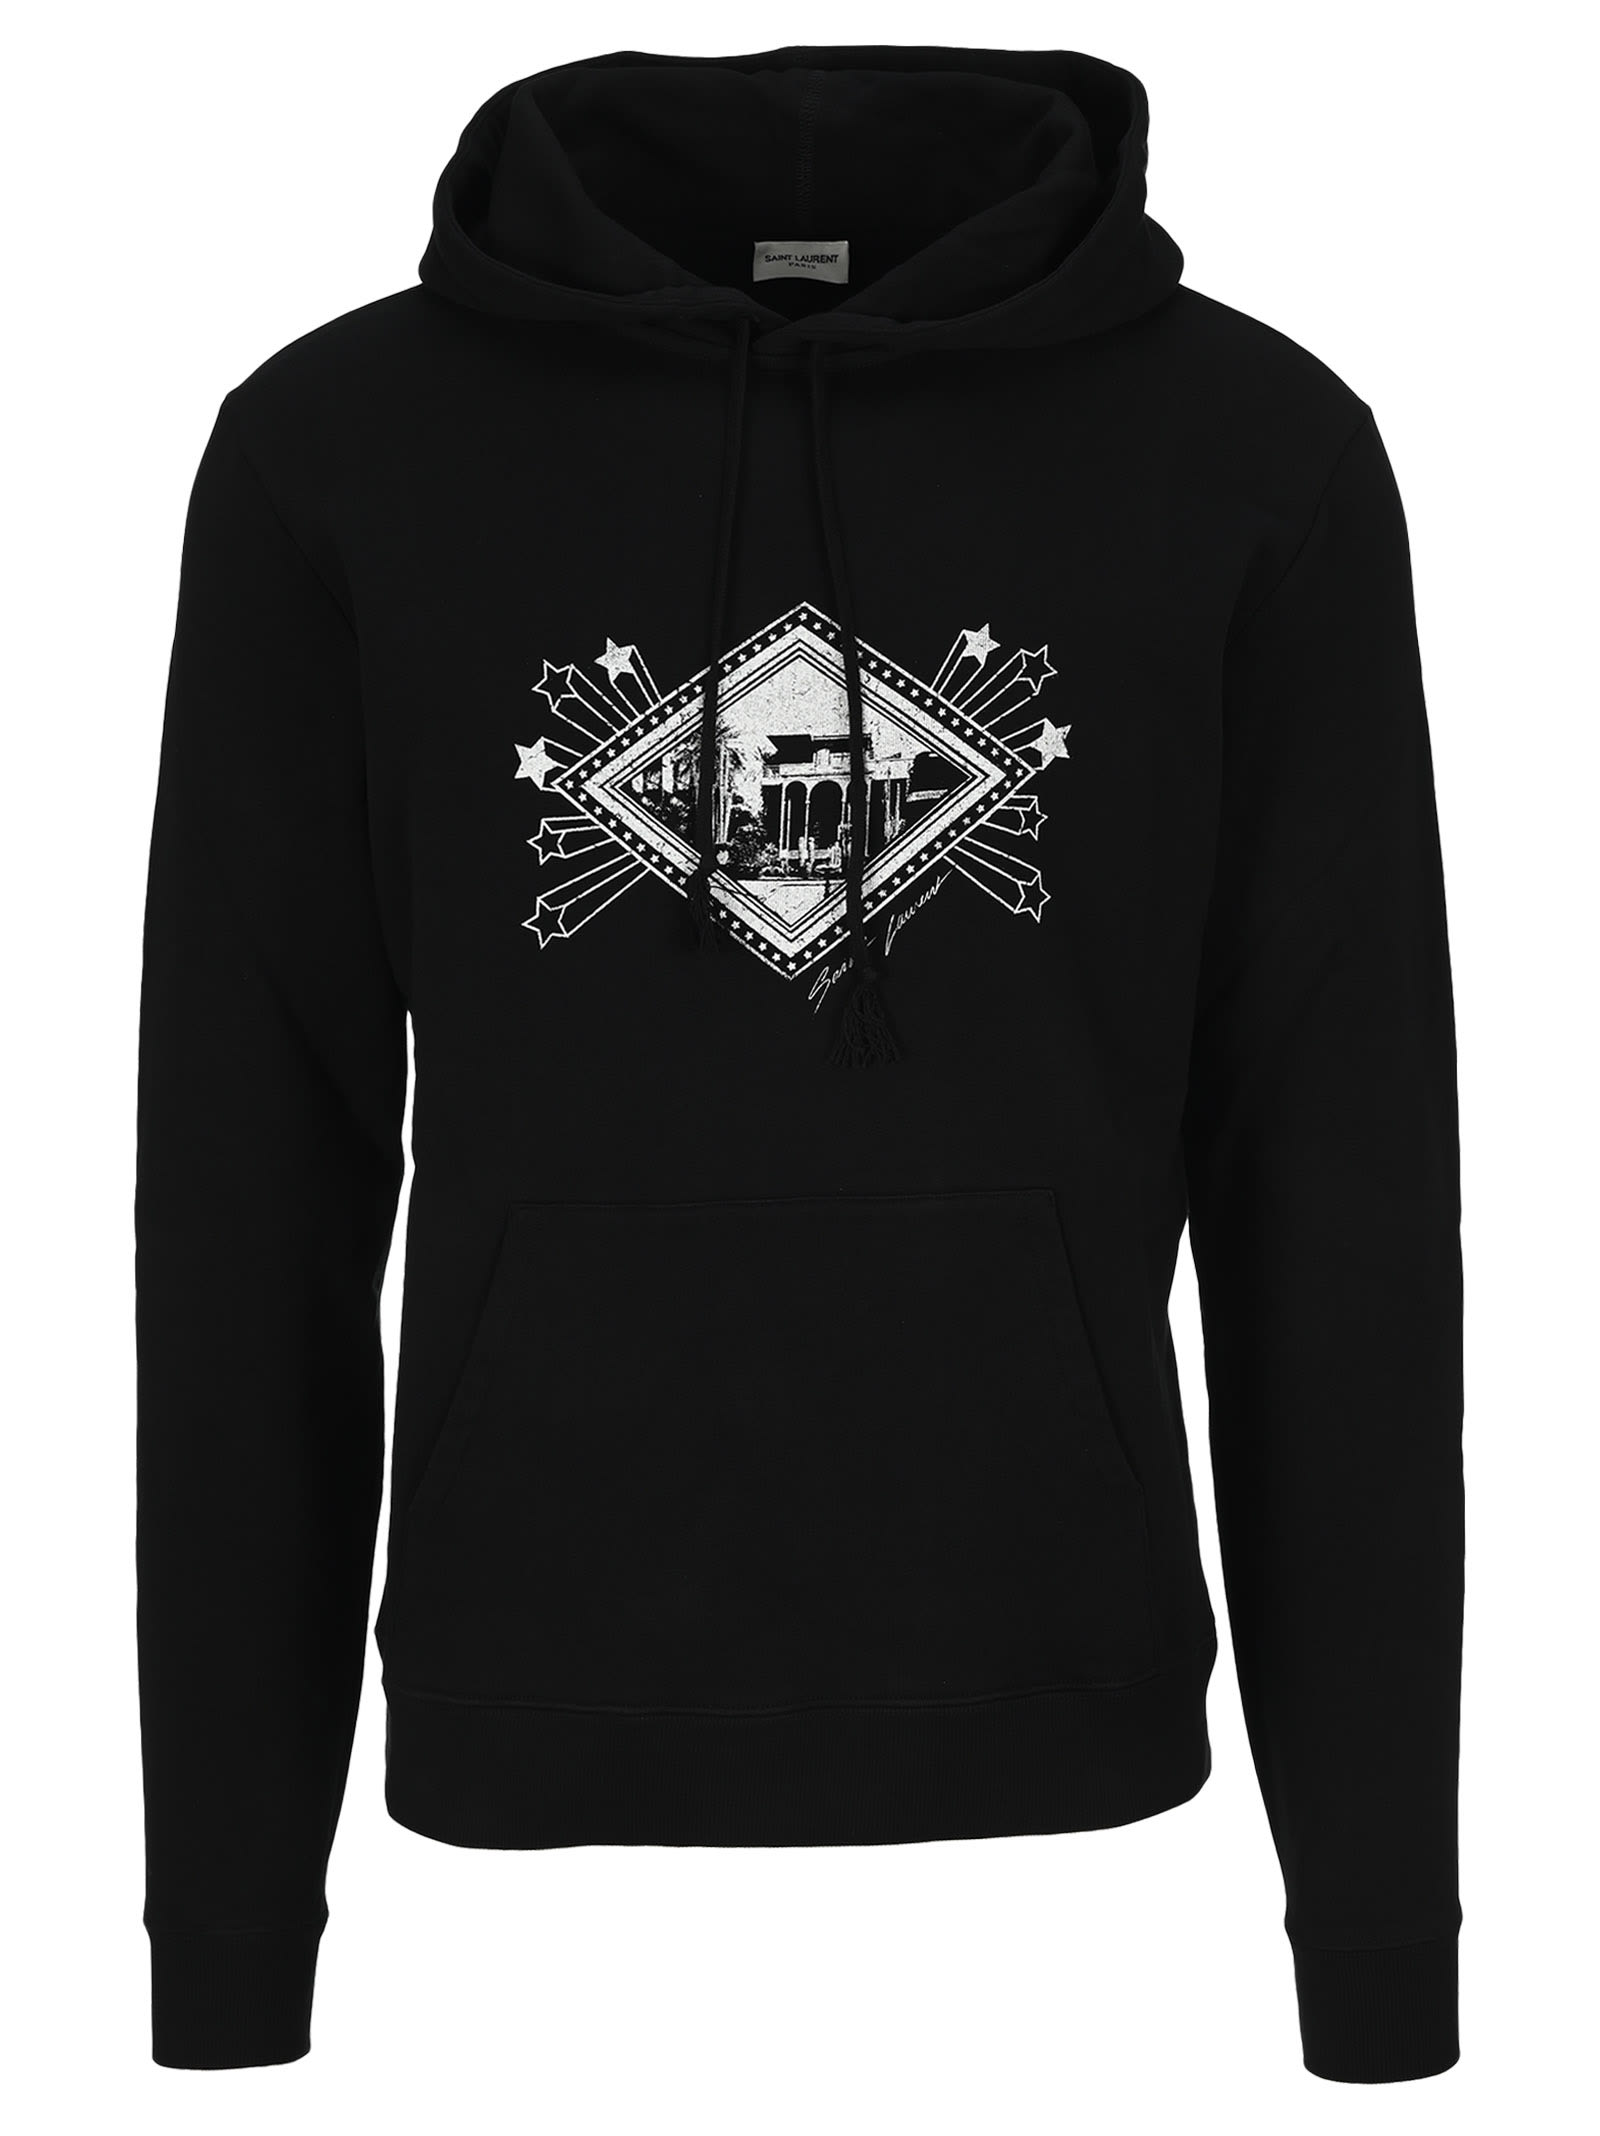 Saint Laurent Graphic Print Hoodie